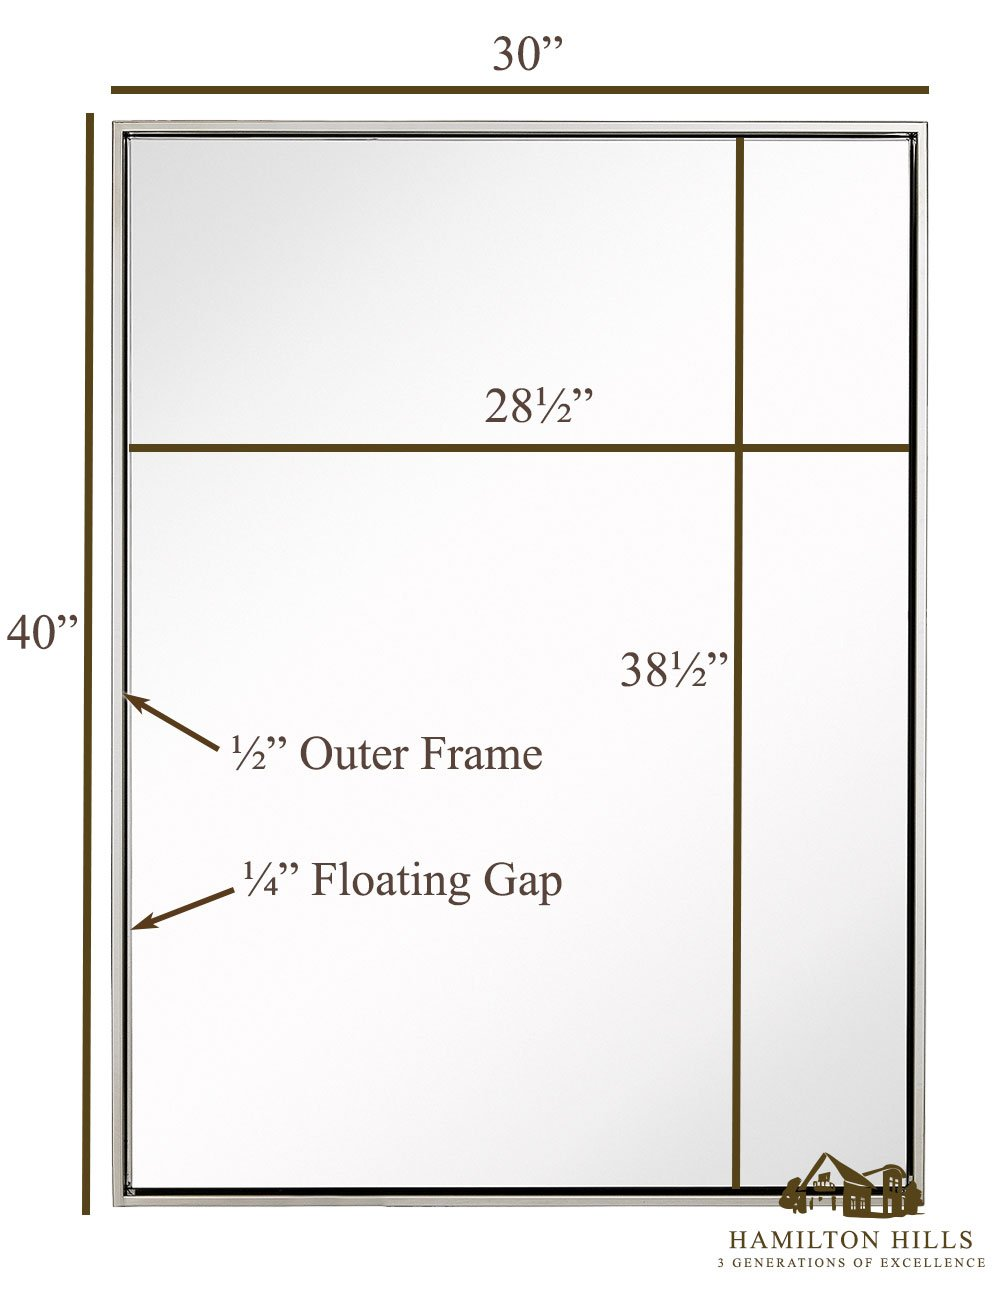 Clean Large Modern Polished Nickel Frame Wall Mirror Contemporary Premium Silver Backed Floating Glass Vanity, Bedroom, or Bathroom Mirrored Rectangle Hangs Horizontal or Vertical 30 x 40